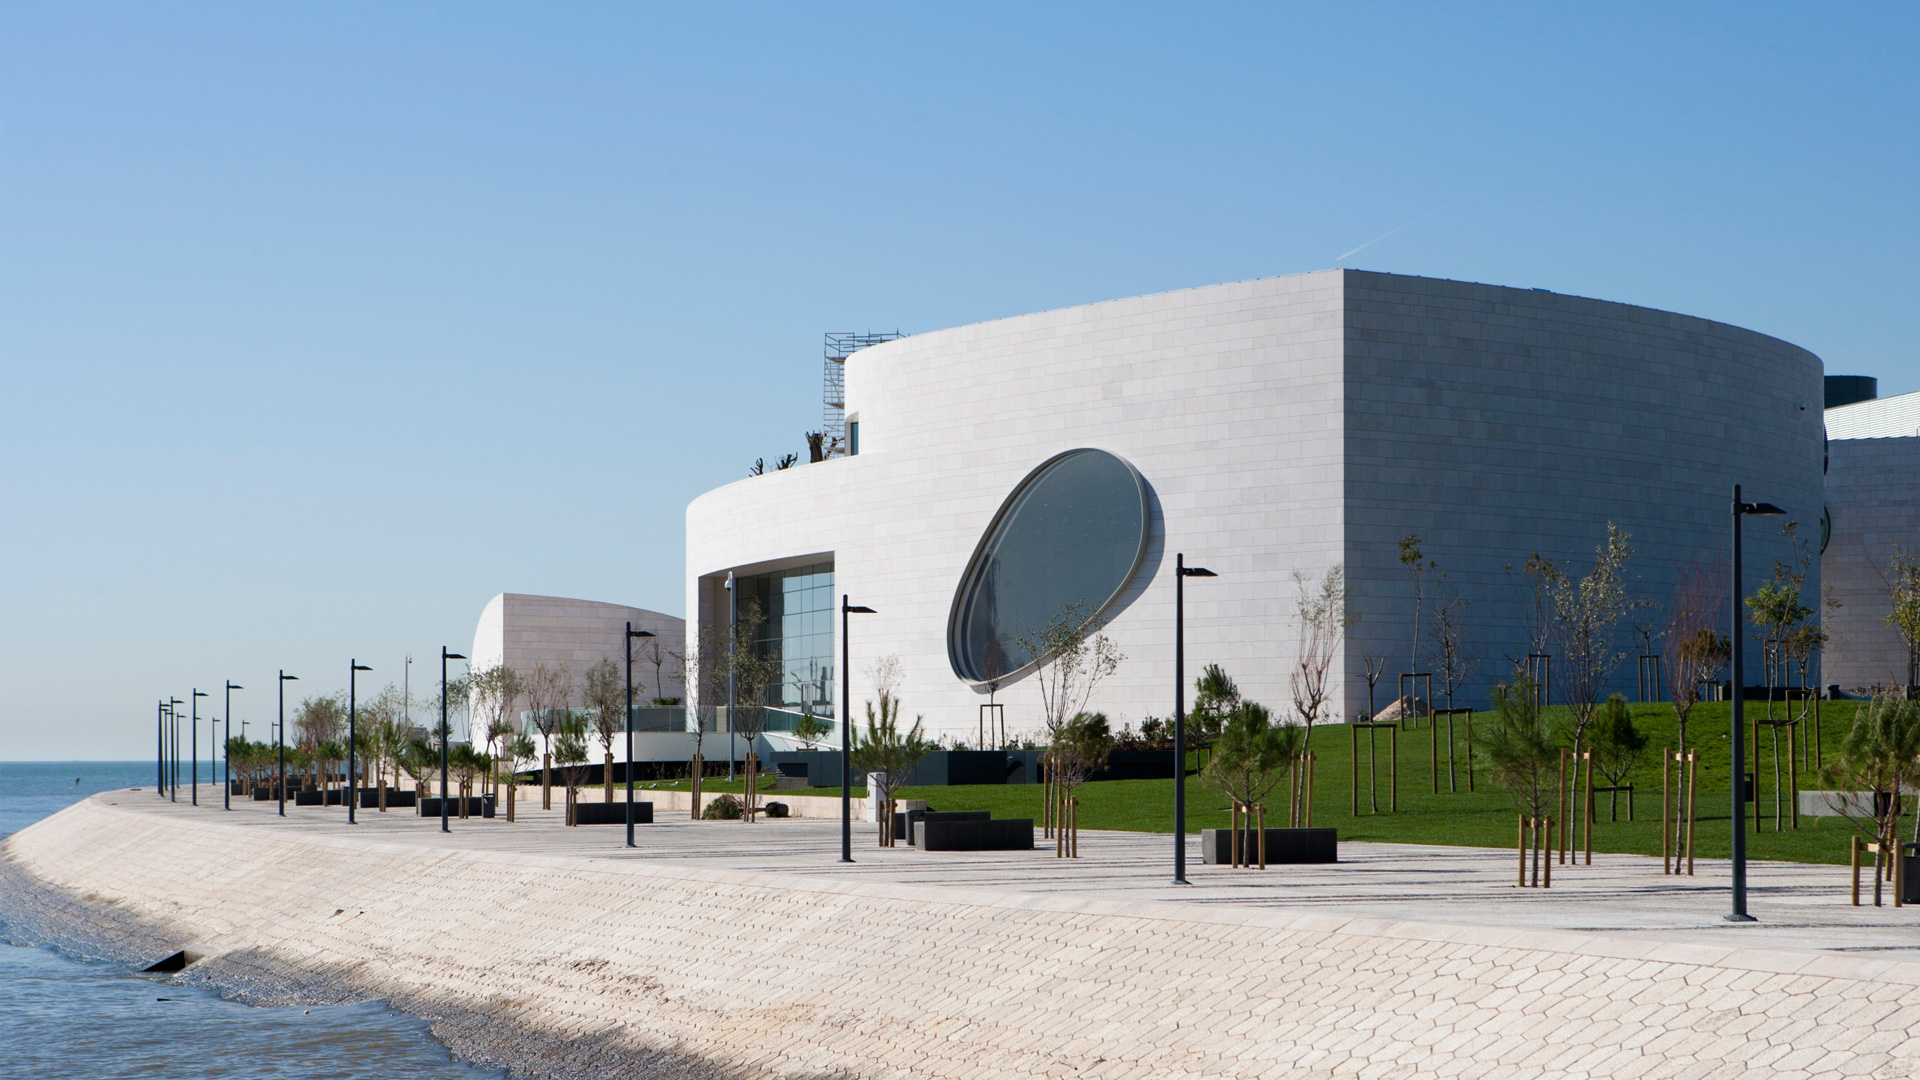 Best Architectural Design: Champalimaud Foundation architectural design Discover the top 7 best architectural designs in Portugal eee2e50699c1706f19d948a1ac49a0dc